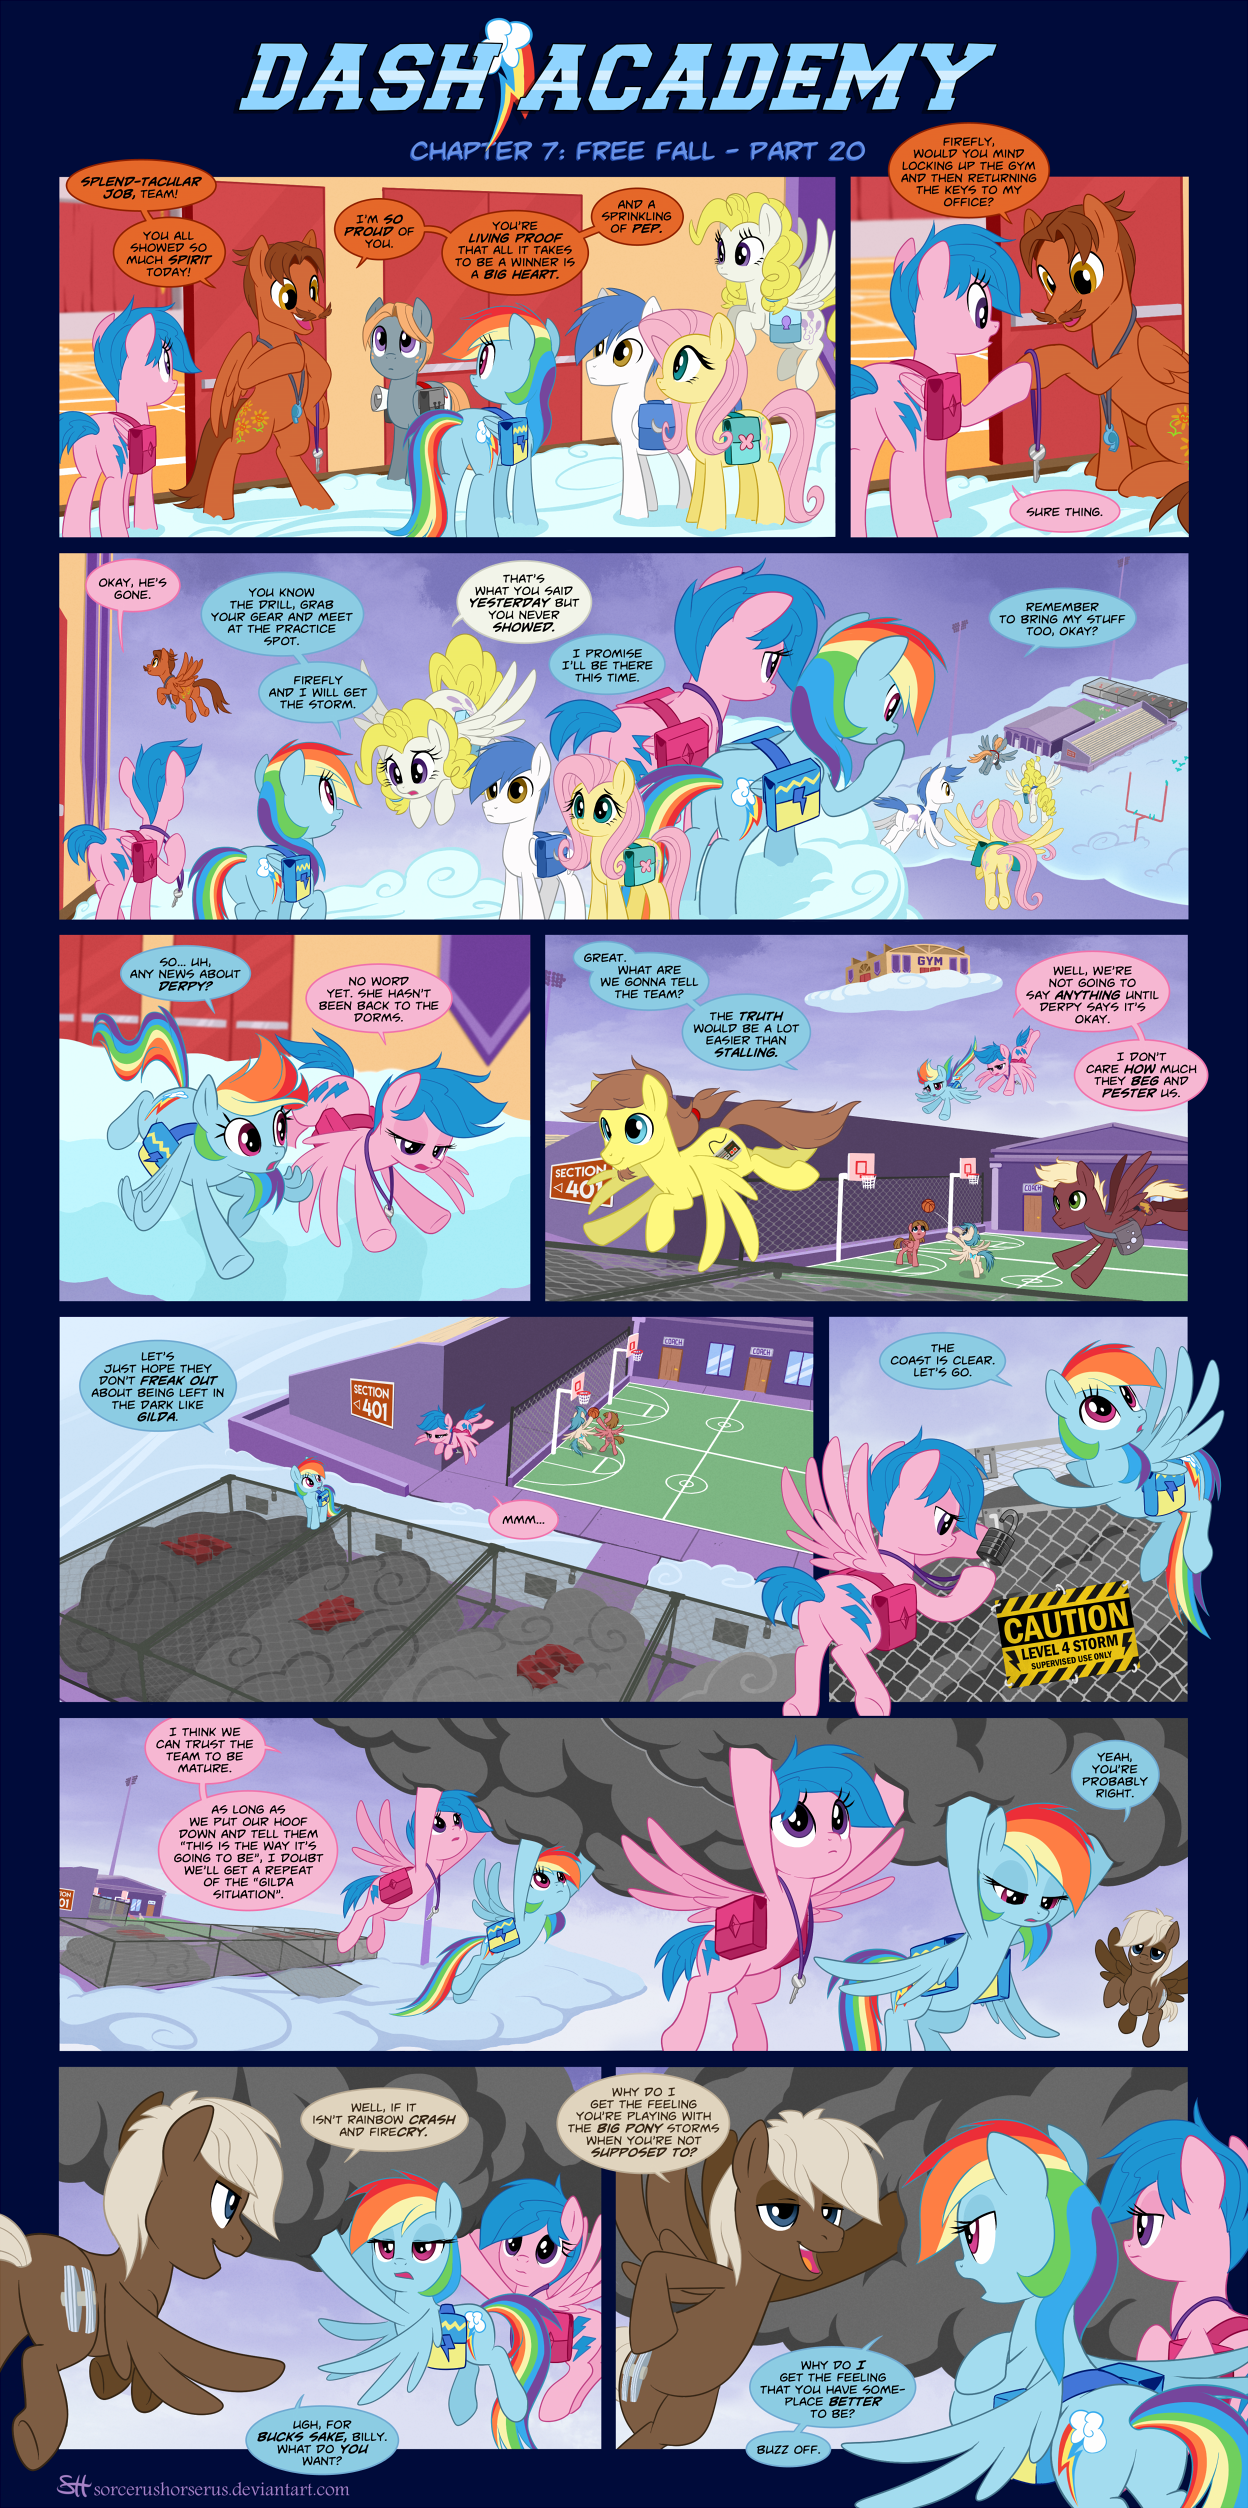 Dash Academy Chapter 7 - Free Fall #20